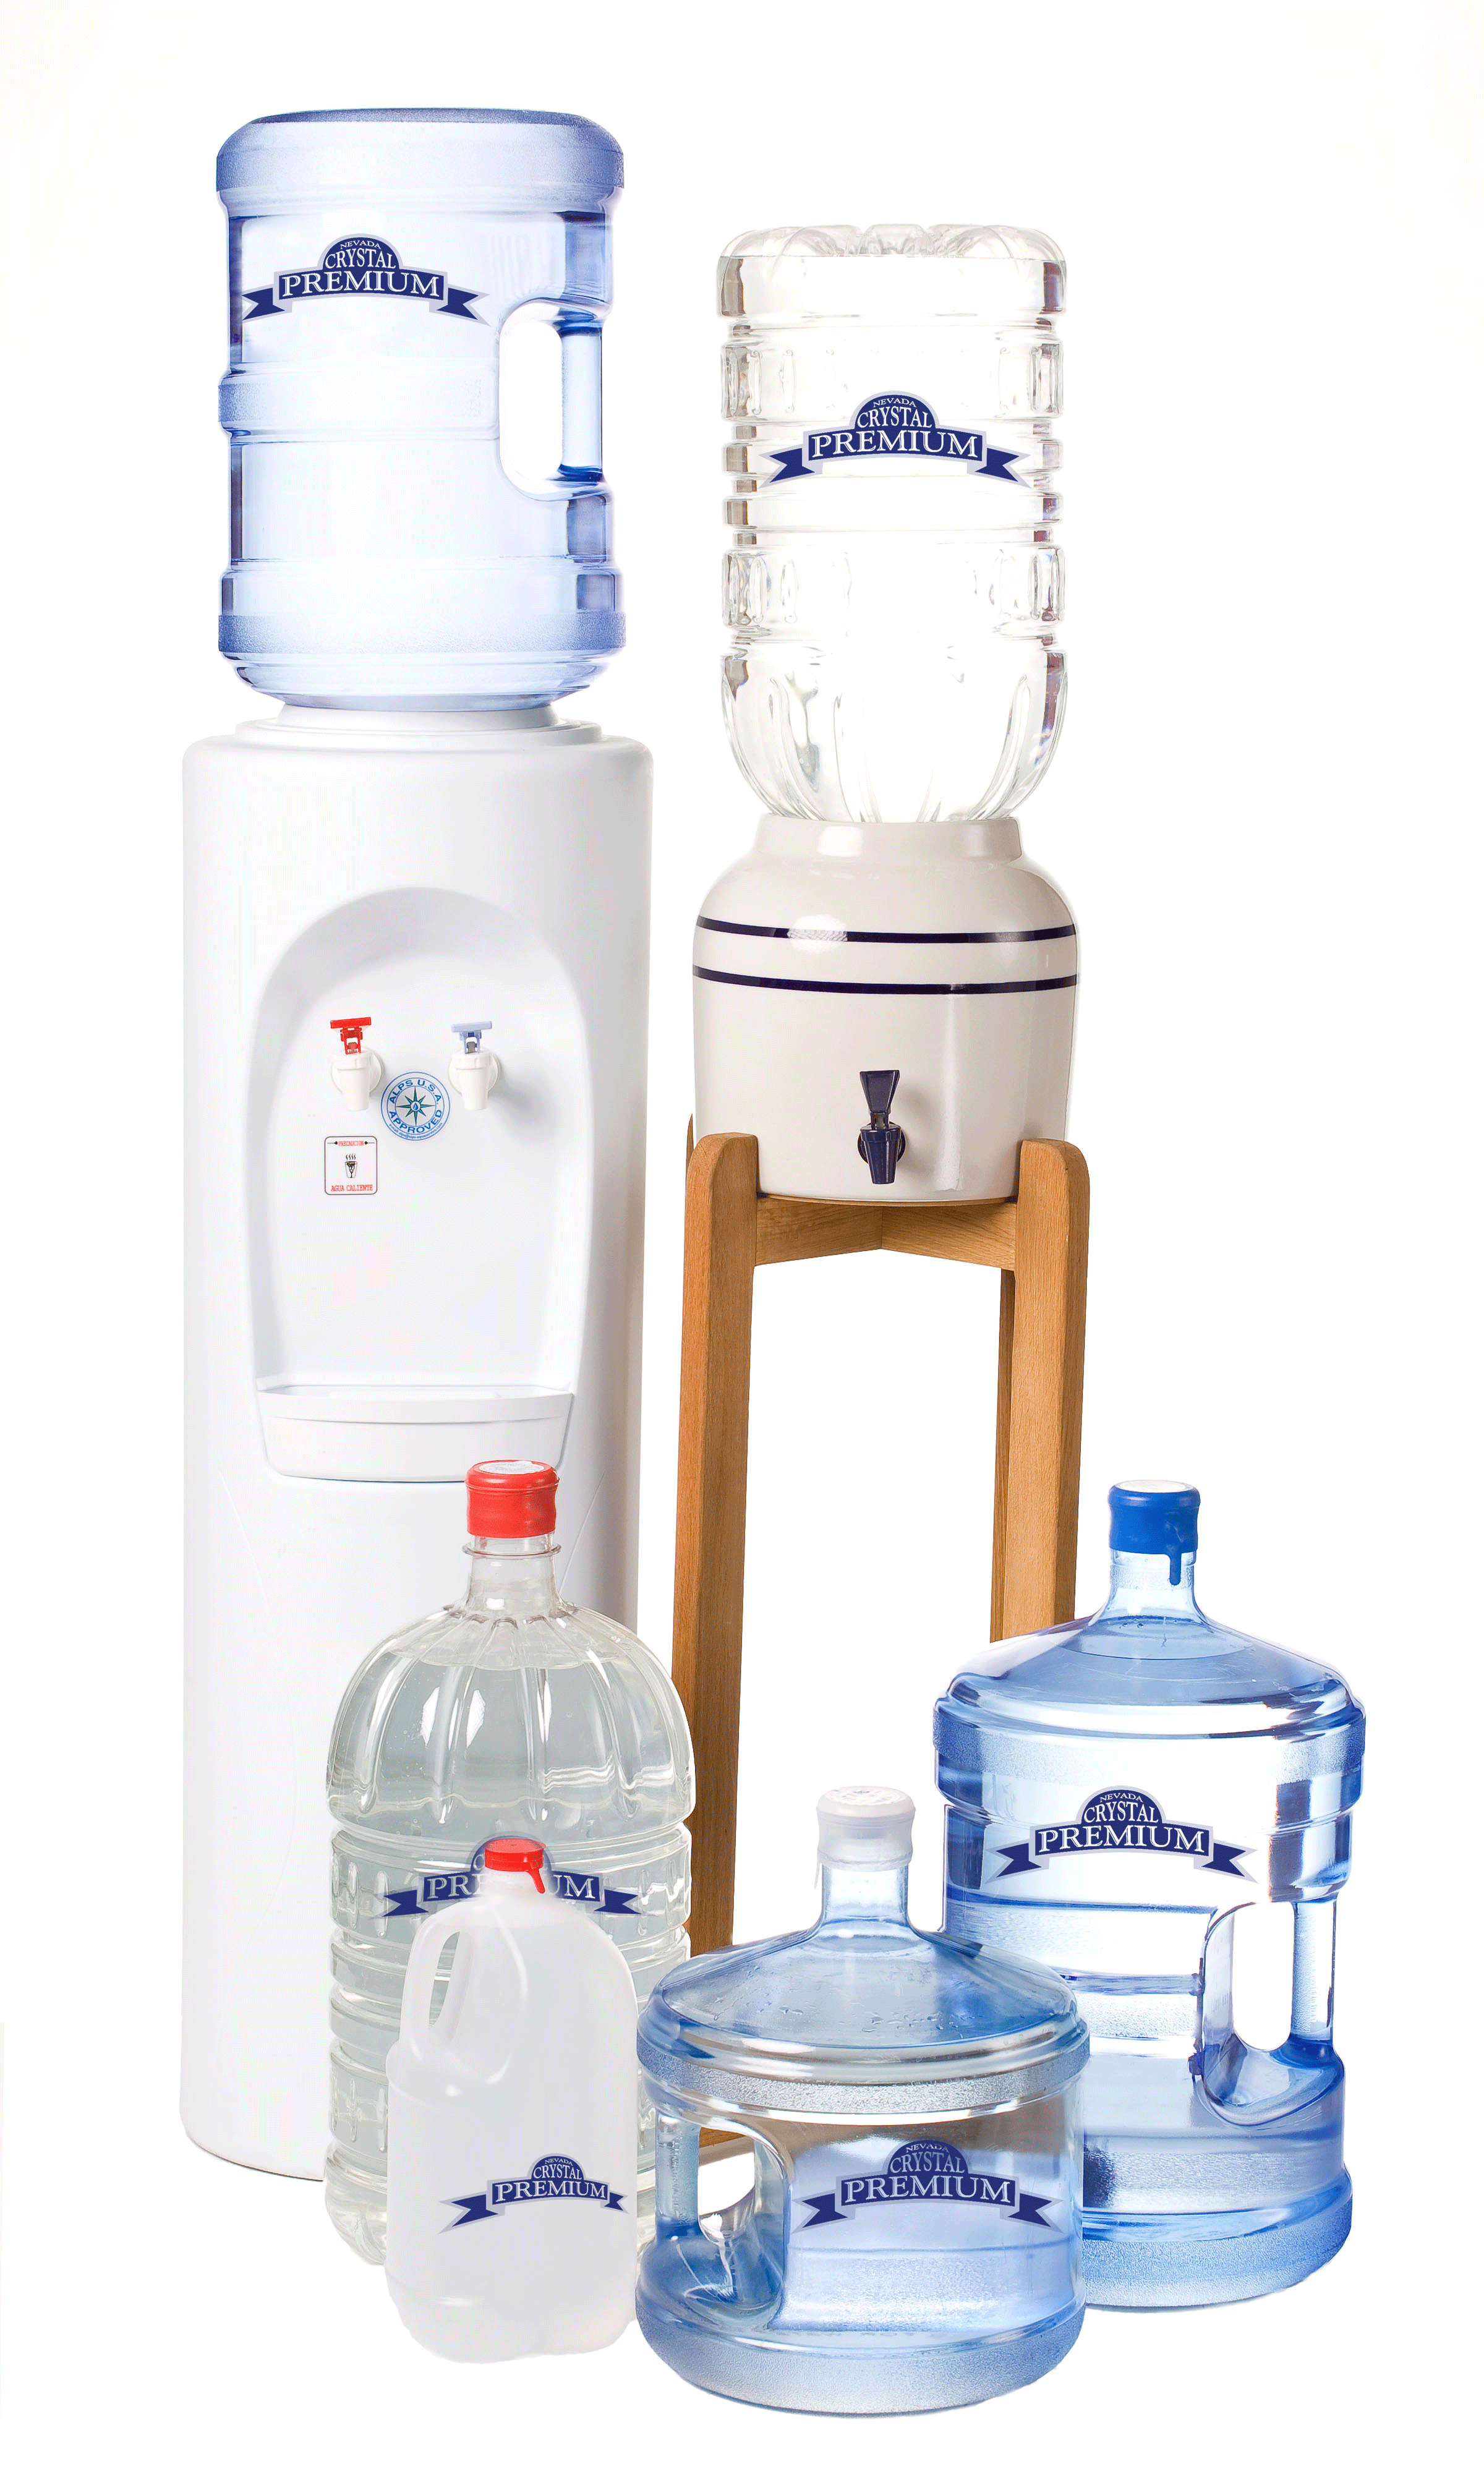 A collection of various bottle sizes and coolers offered by Nevada Crystal Premium water delivery service.